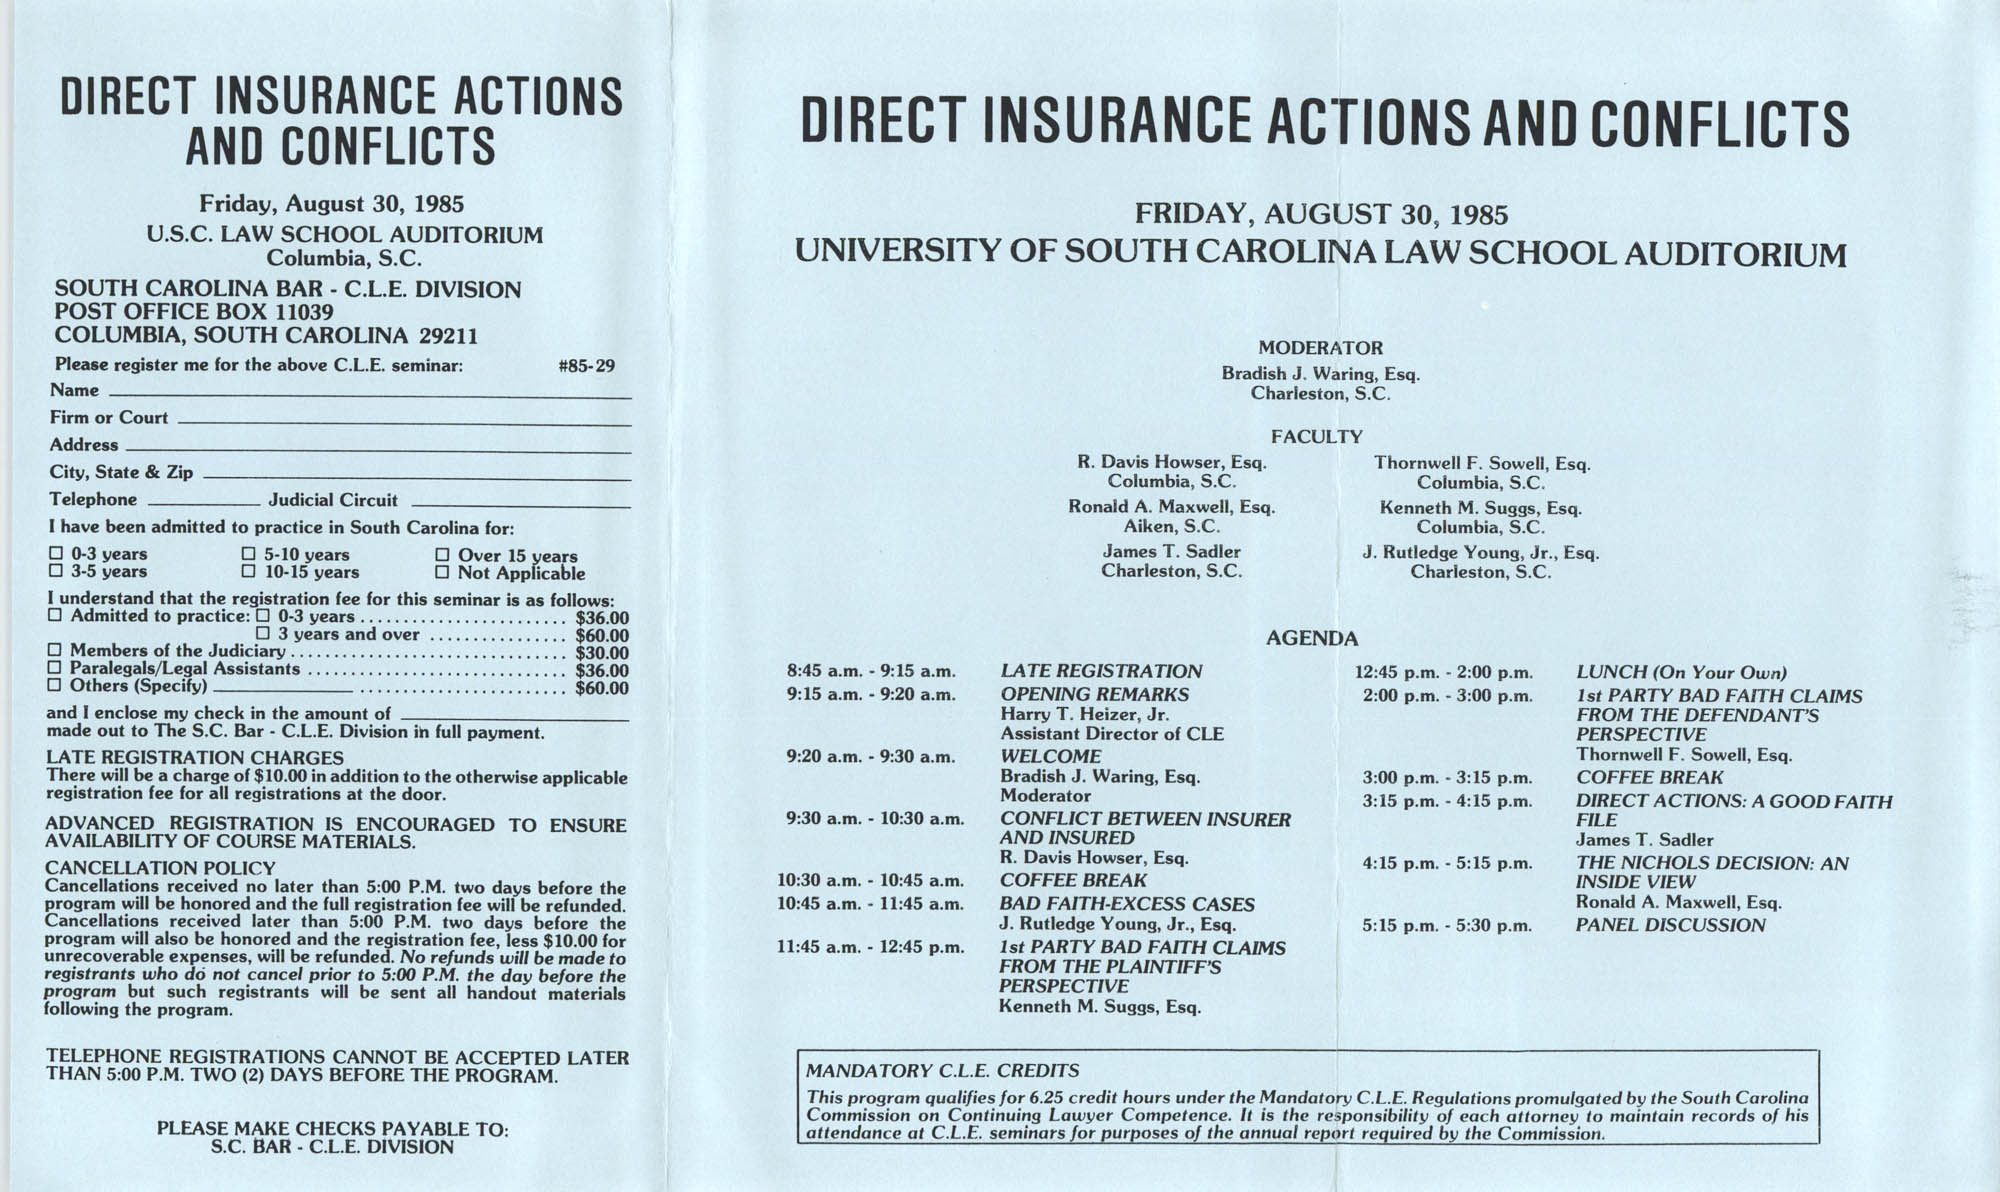 Direct Insurance Actions and Conflicts, Continuing Legal Education Seminar Pamphlet, August 30, 1985